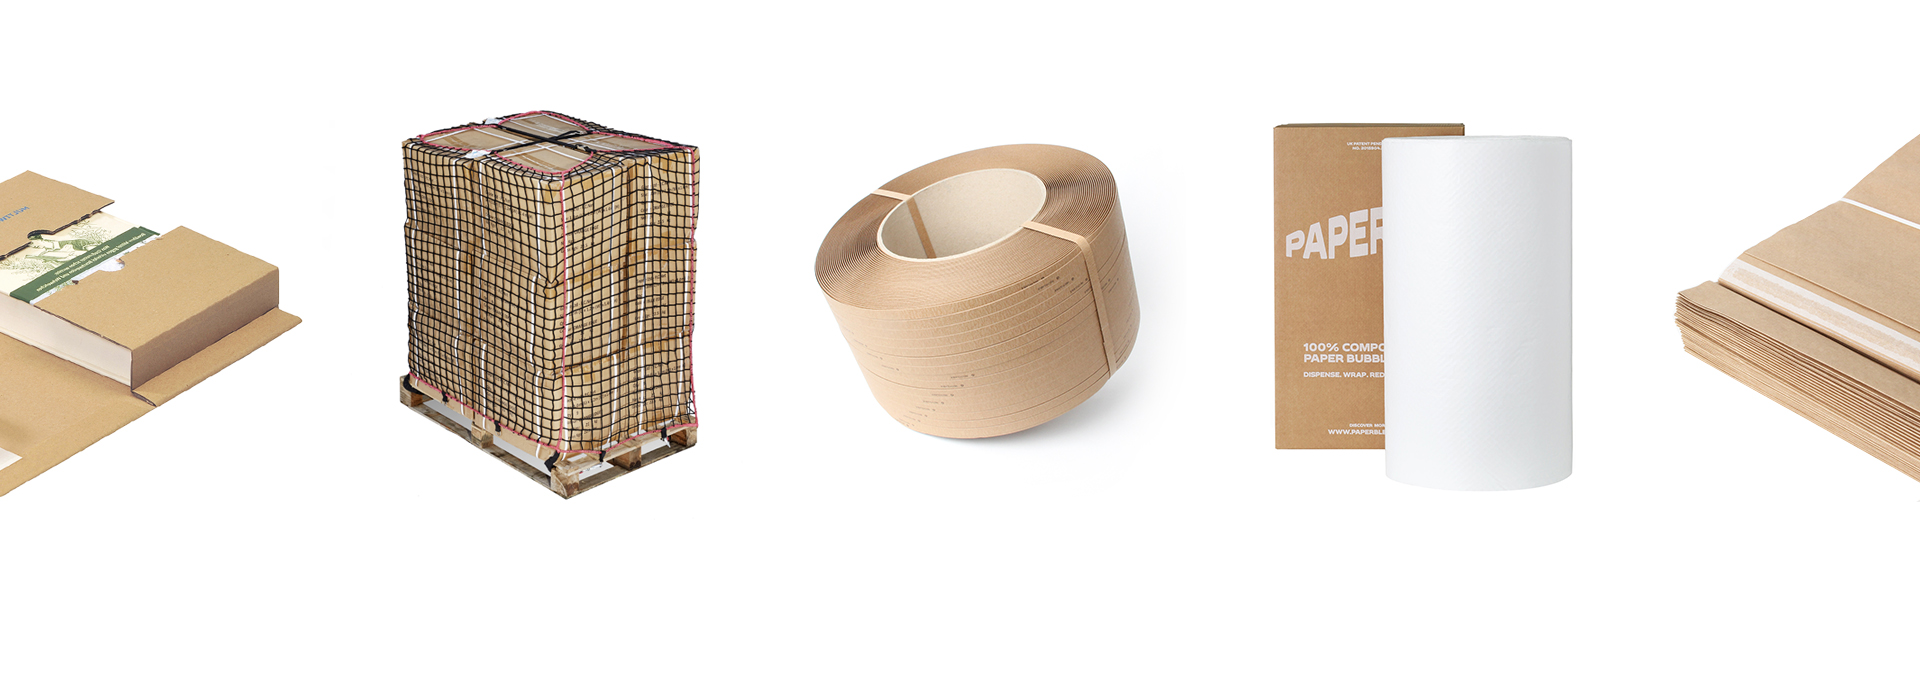 The ReThink Range of Sustainable Packaging